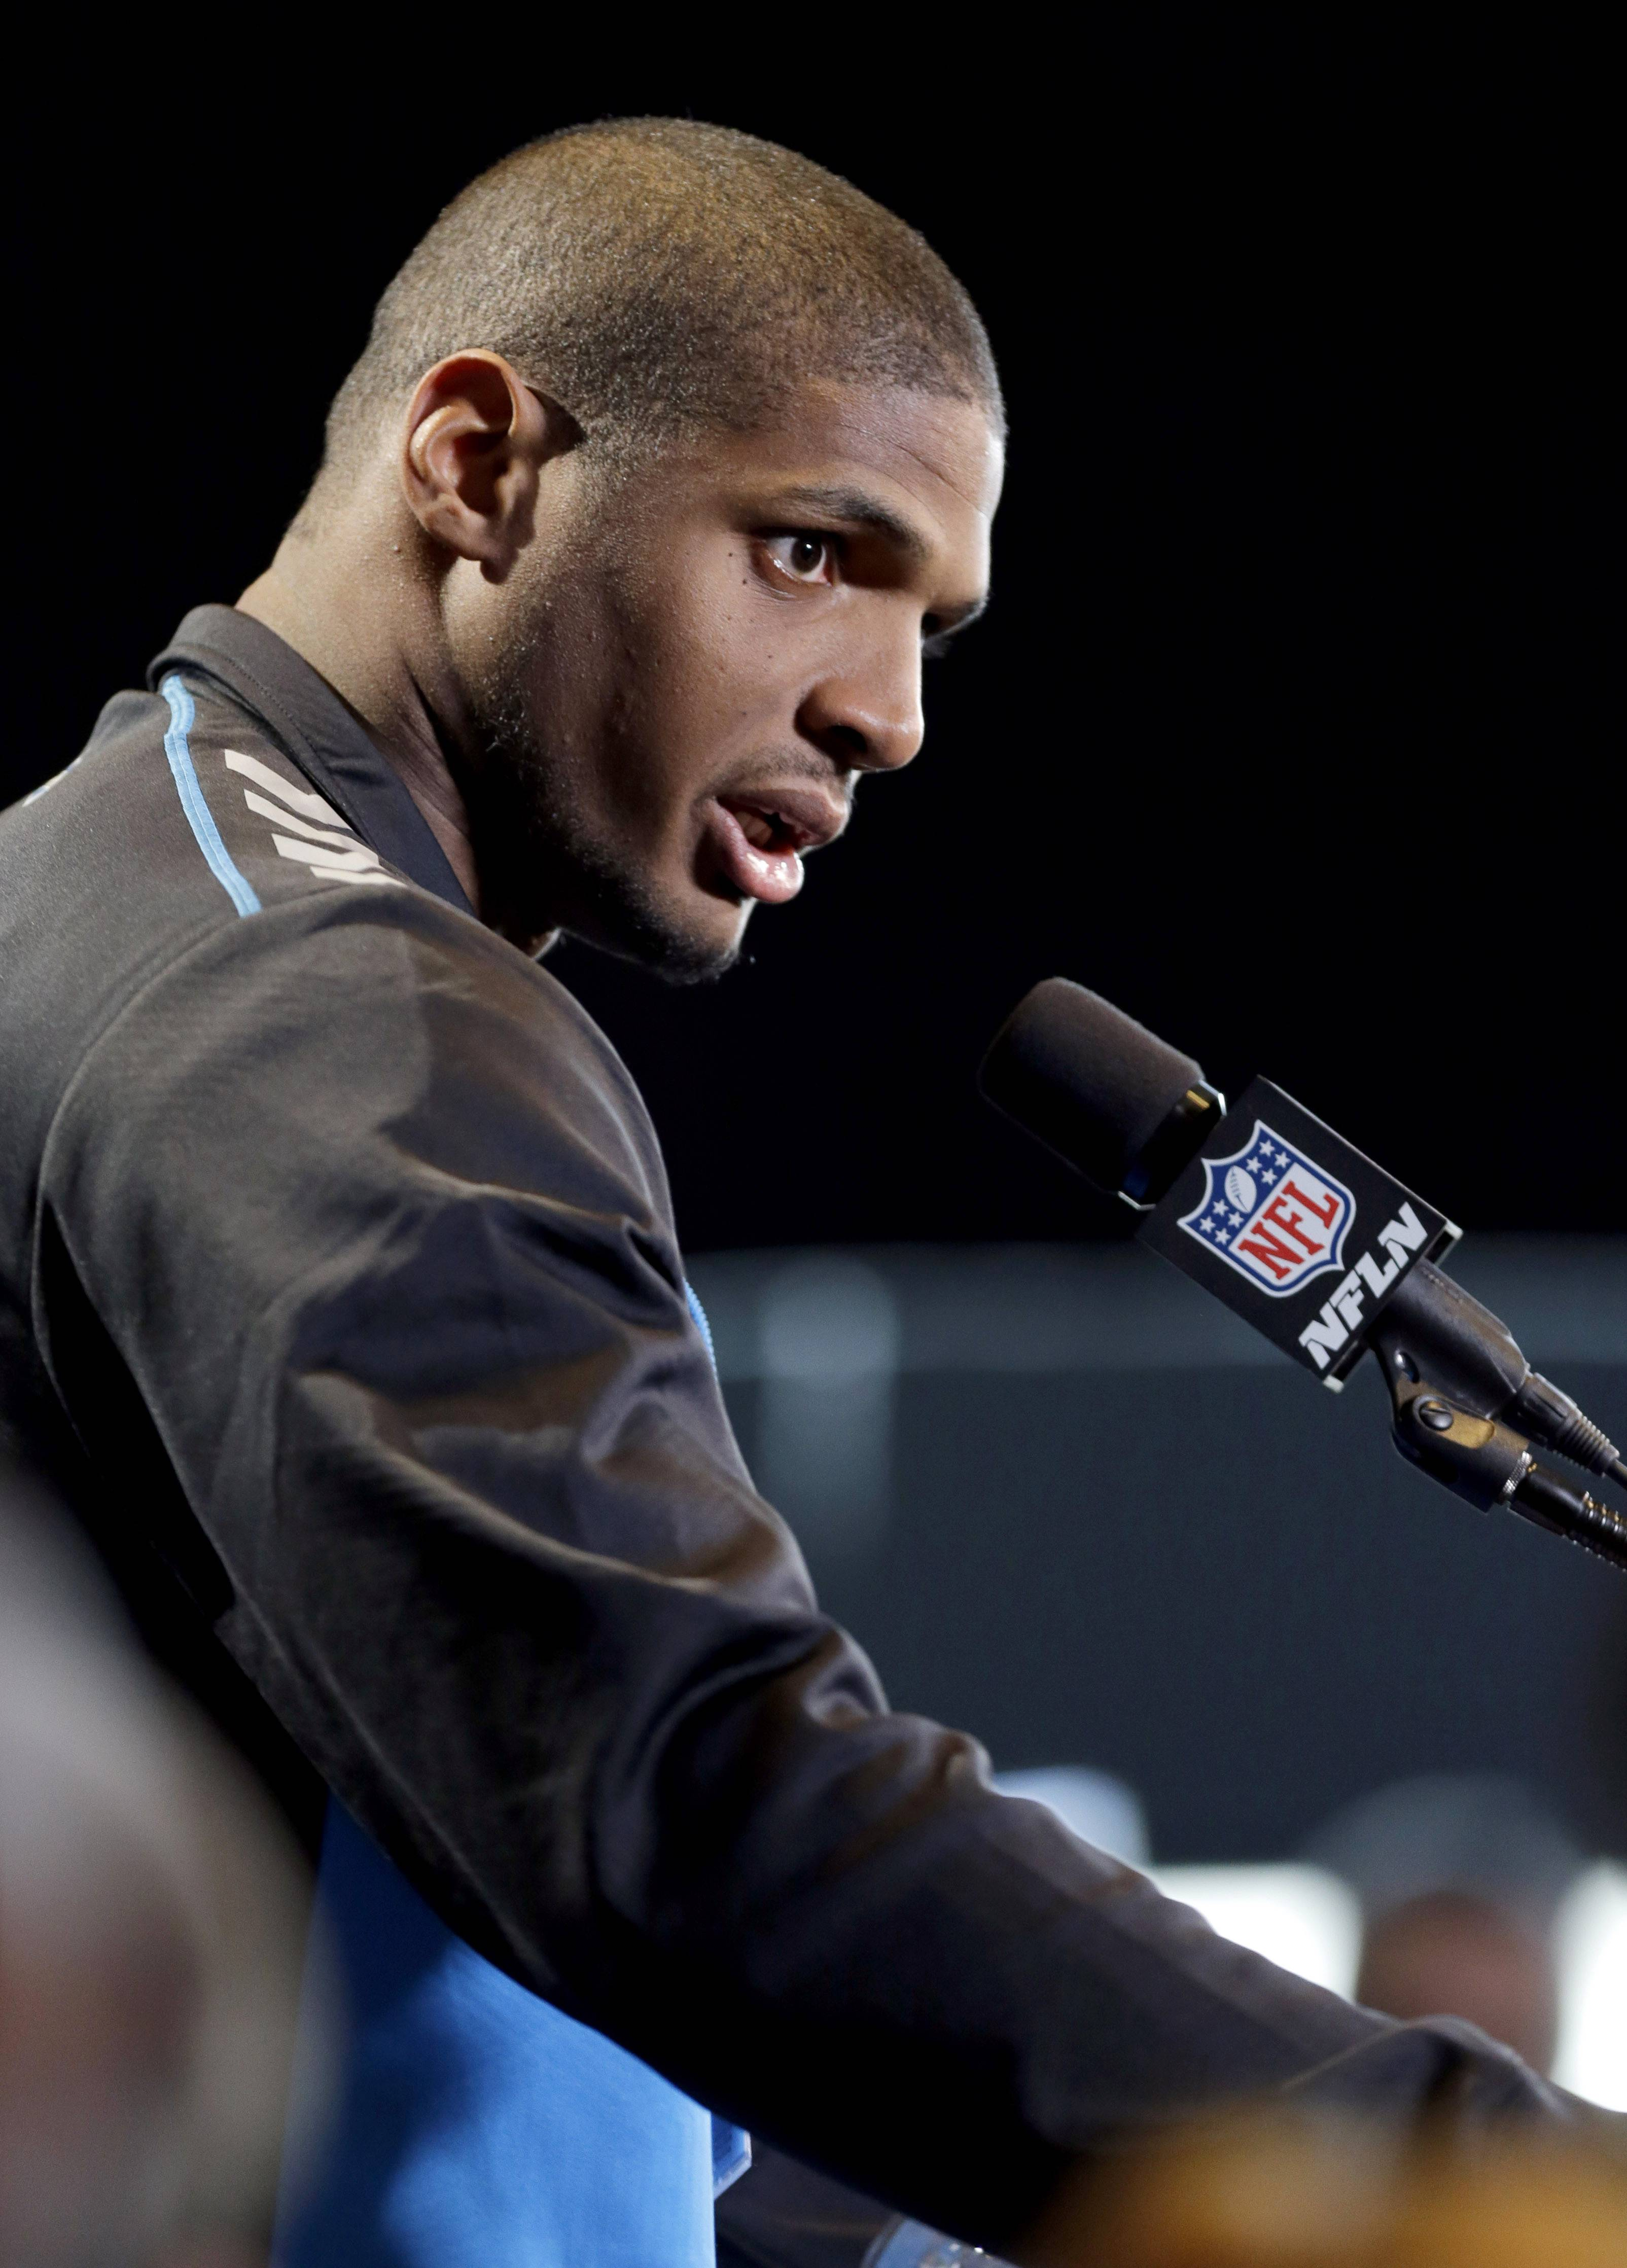 Missouri defensive end Michael Sam speaks during a news conference at the NFL football scouting combine in Indianapolis, Saturday, Feb. 22, 2014. (AP Photo/Nam Y. Huh)